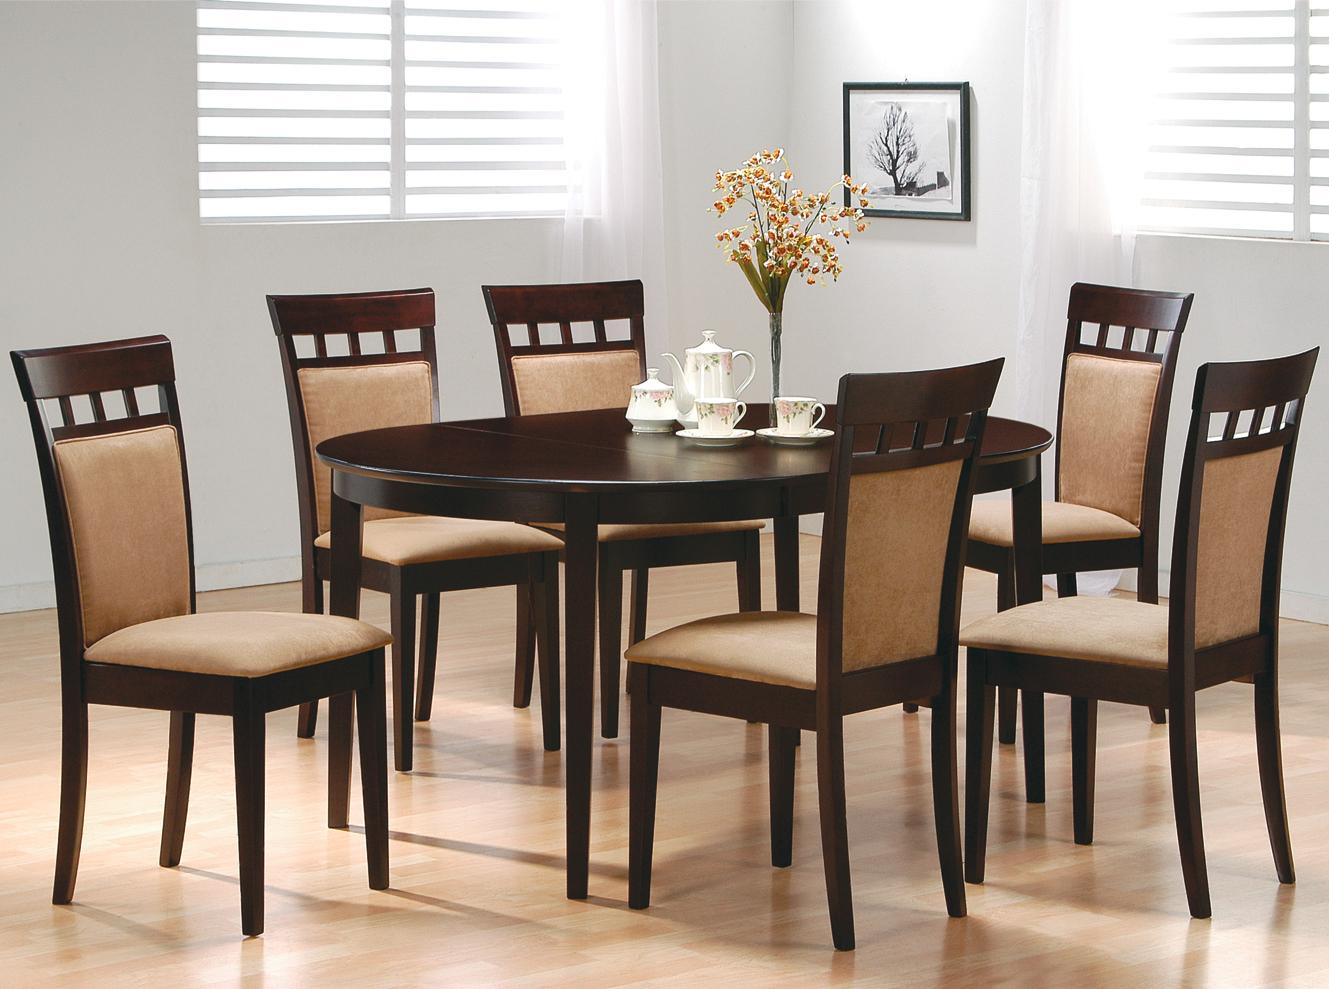 Black Dining Room Table And Chairs Mix Match 7 Piece Dining Set By Coaster At Dunk Bright Furniture